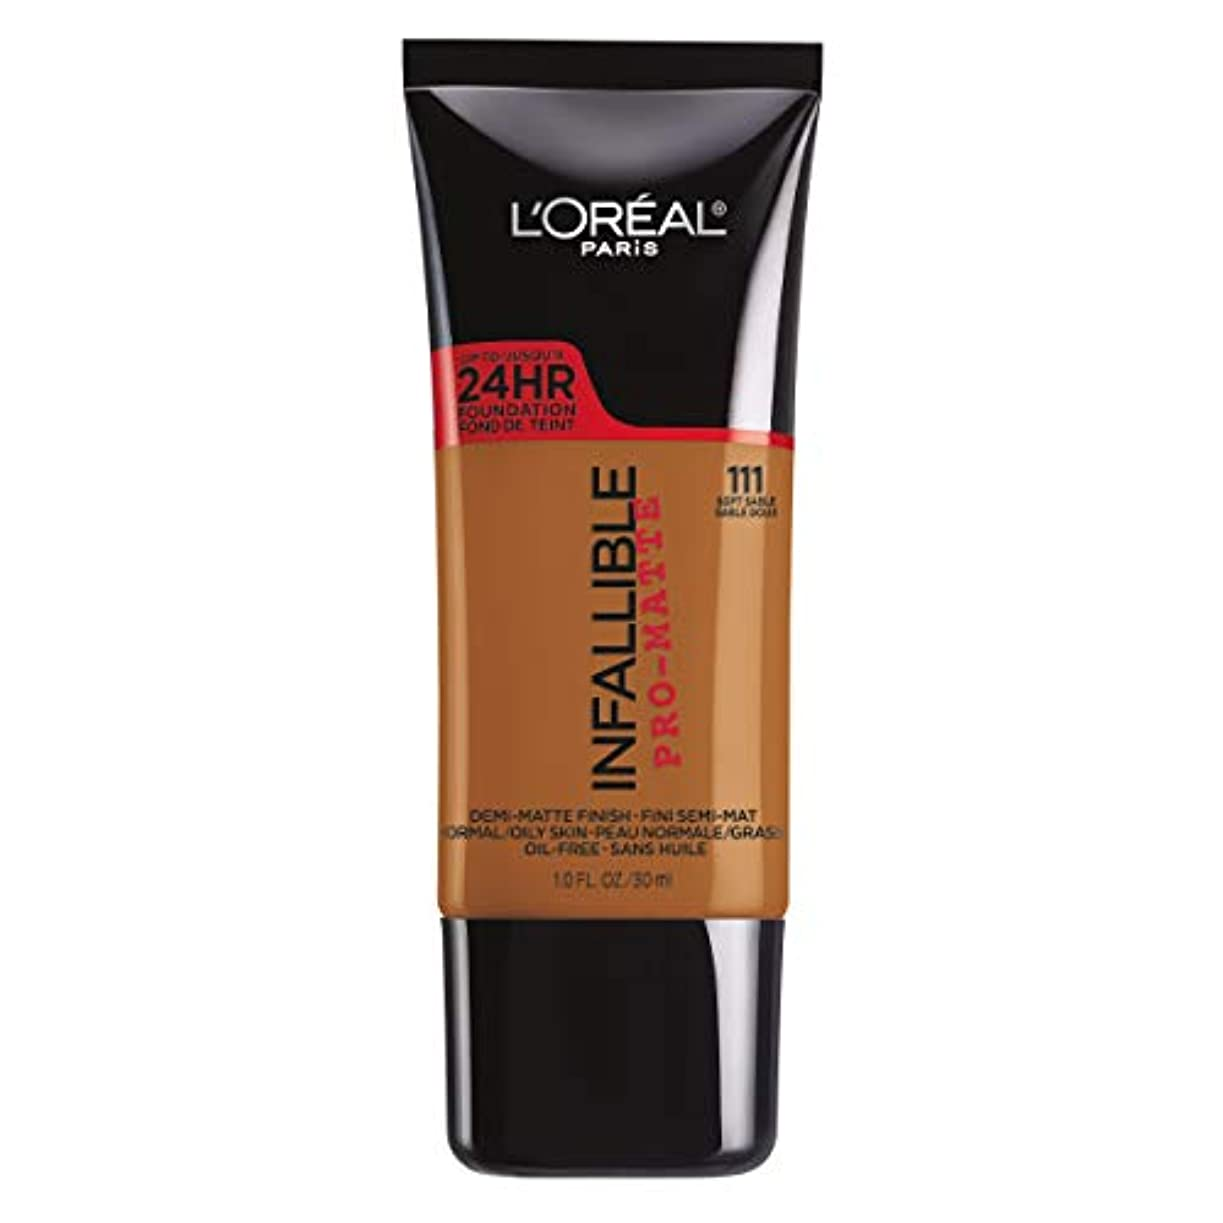 刺激するヒント経過L'Oreal Paris Infallible Pro-Matte Foundation Makeup, 111 Soft Sable, 1 fl. oz[並行輸入品]